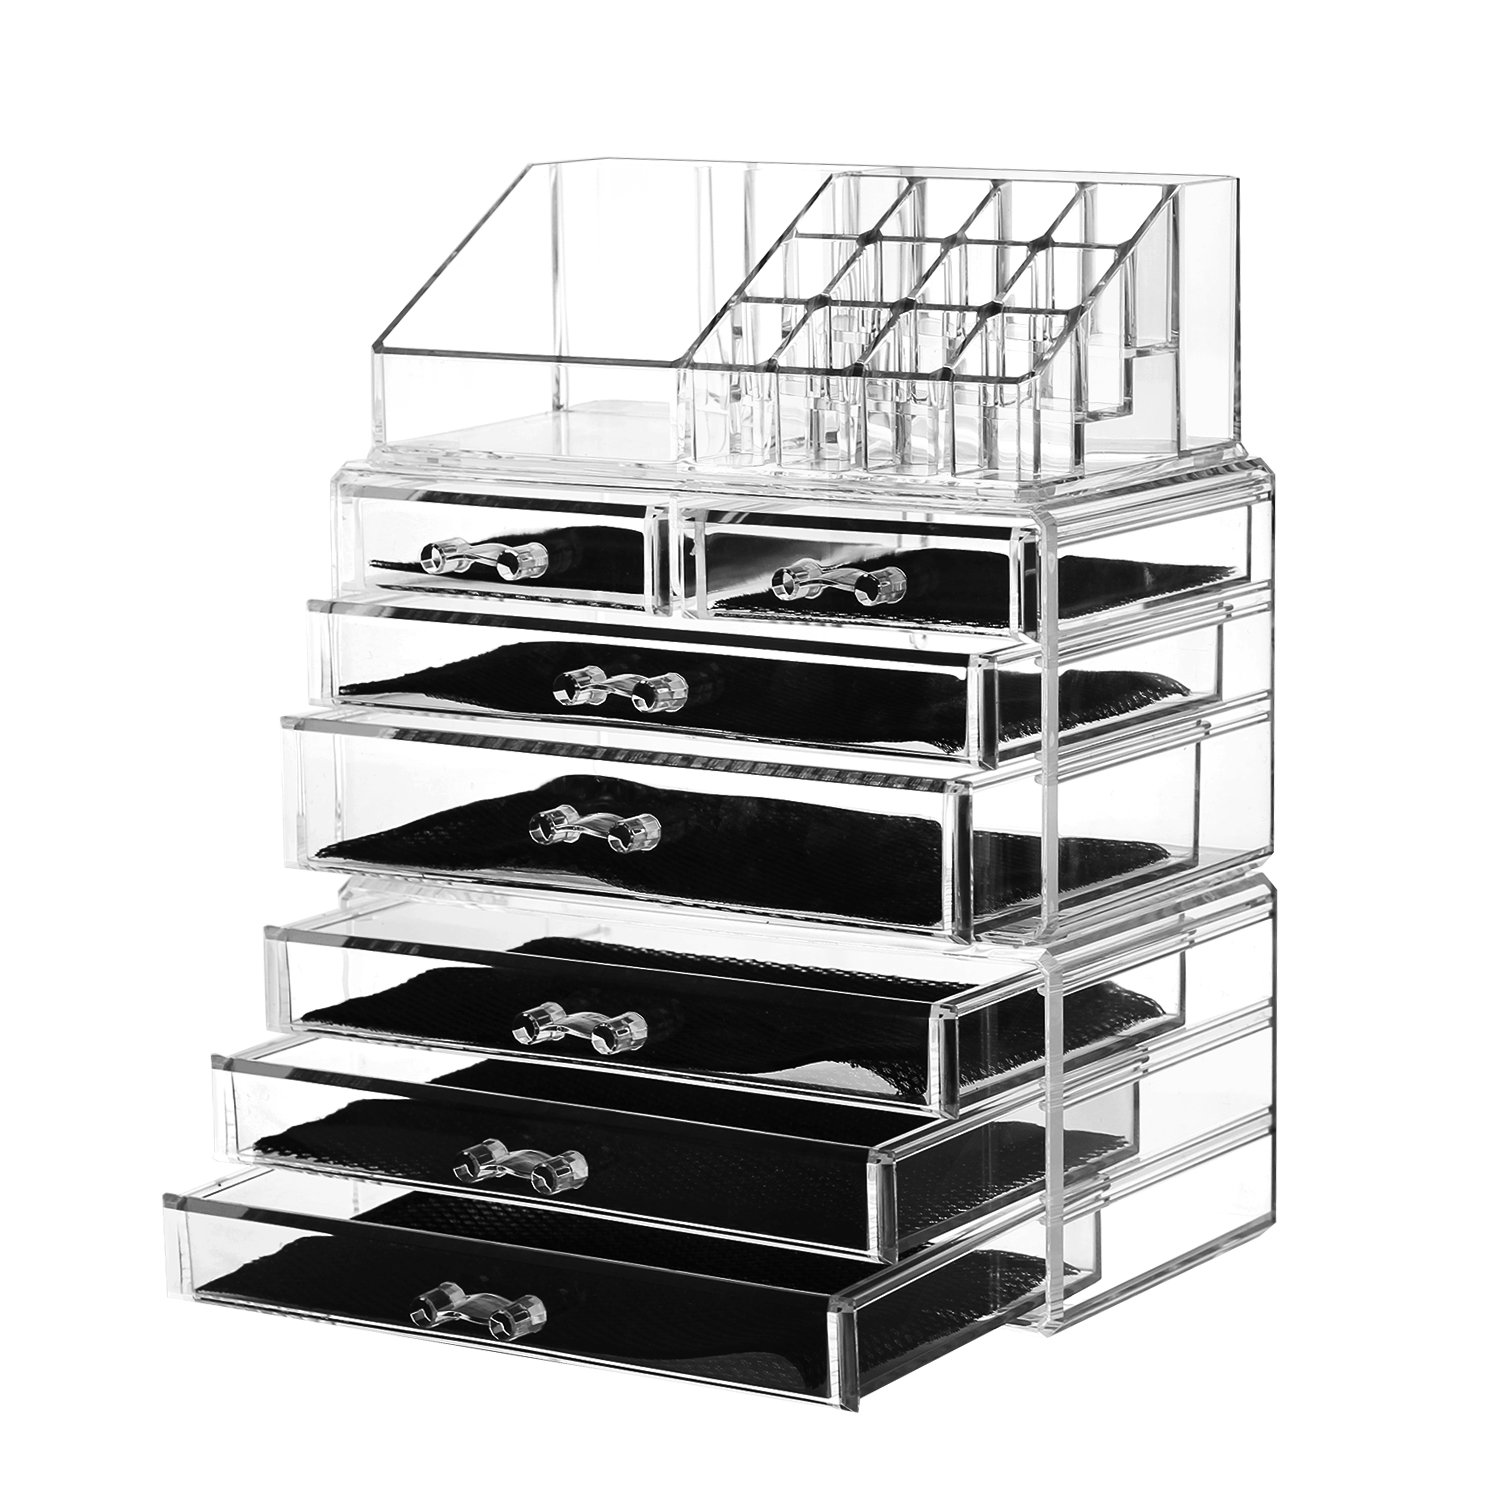 f56973d3d33e Details about Felicite Home Acrylic Jewelry and Cosmetic Storage Makeup  Organizer Set, 3Piece